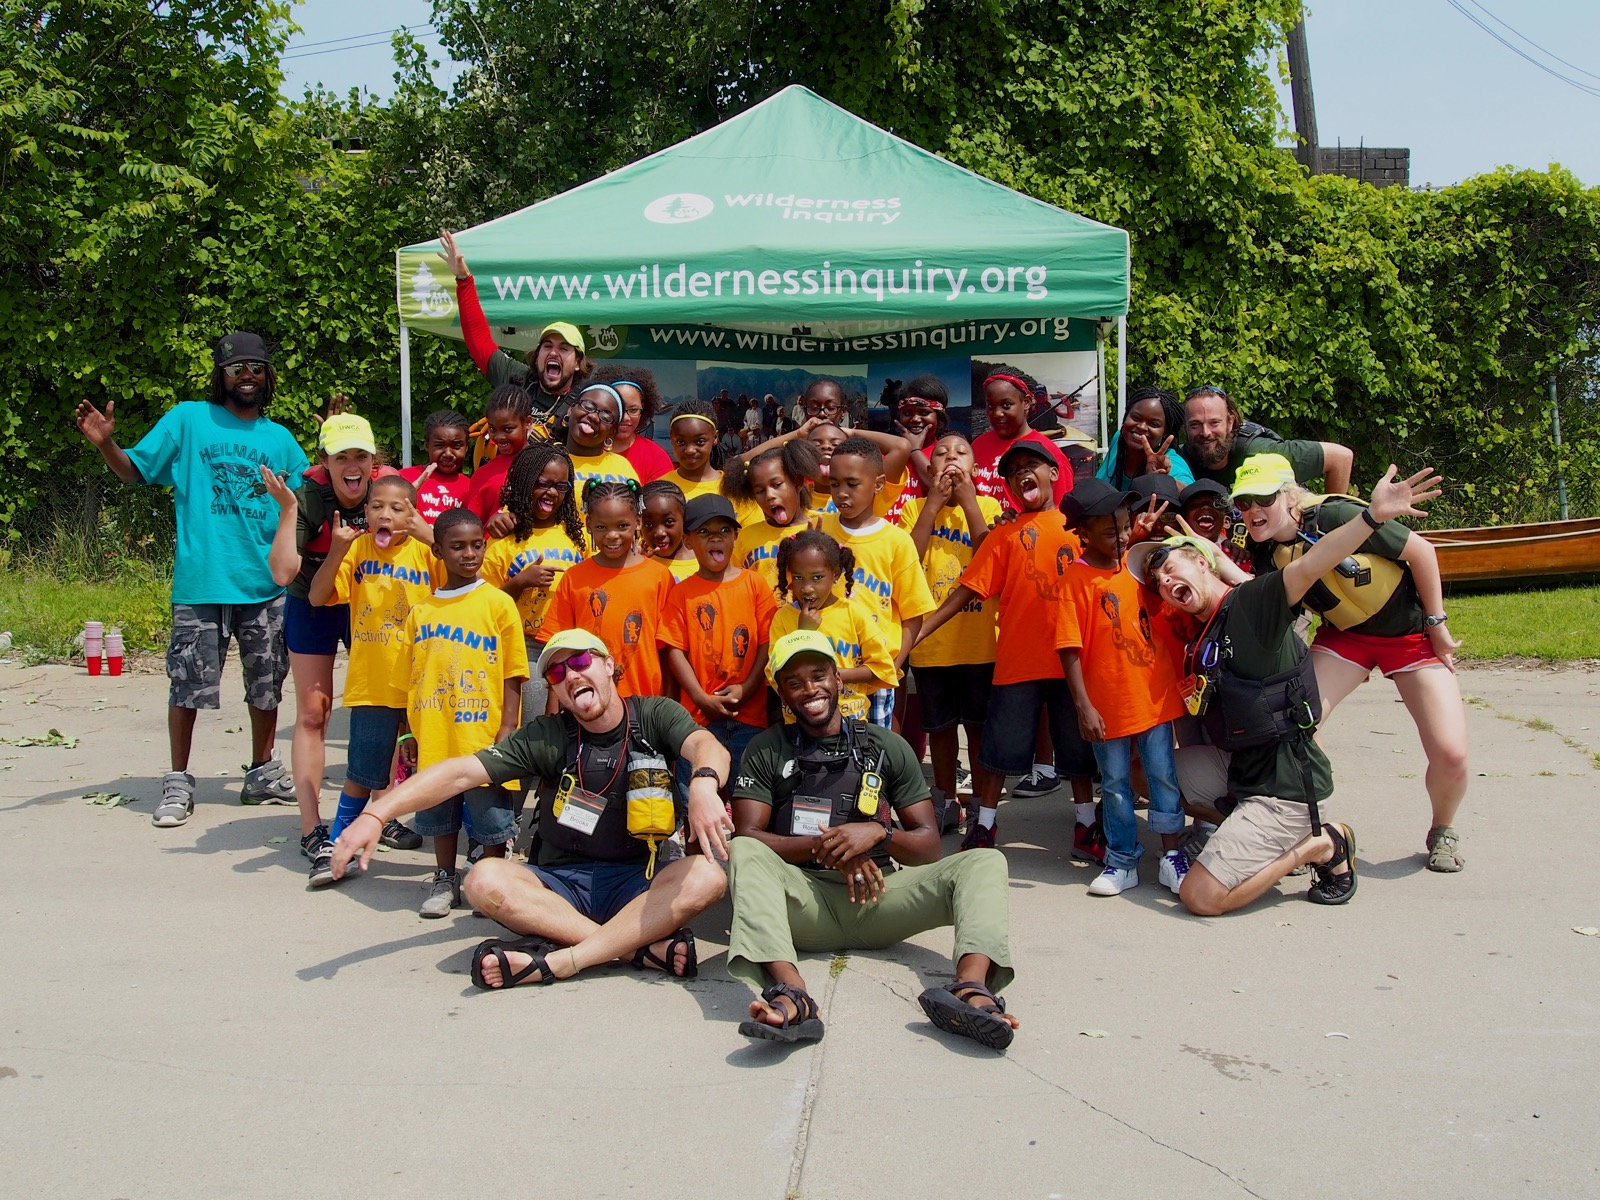 group photo of students and staff on the beach after canoeing the Detroit River